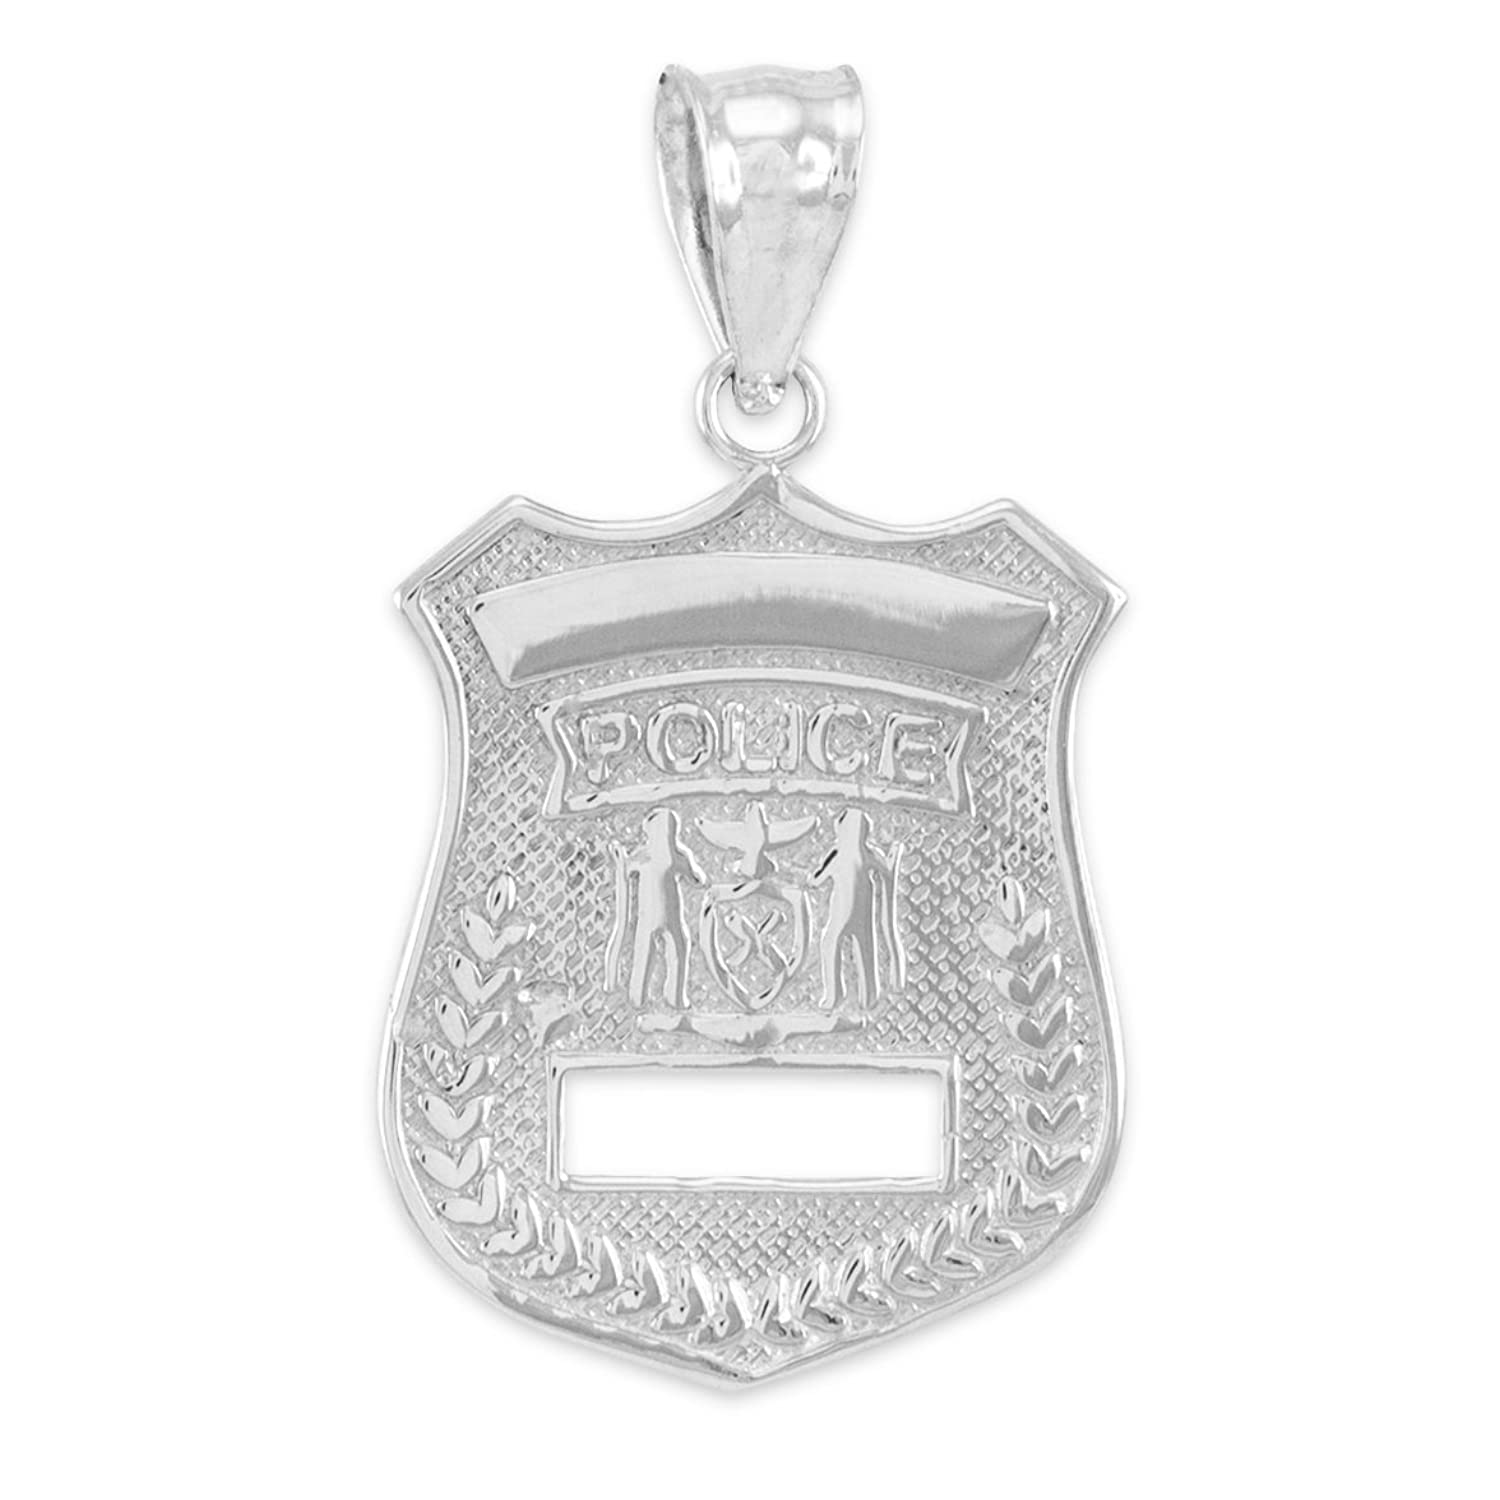 love wife products bracelet adjustable i policeman pendant gift bangle on expandable image police wire occupational department badge my